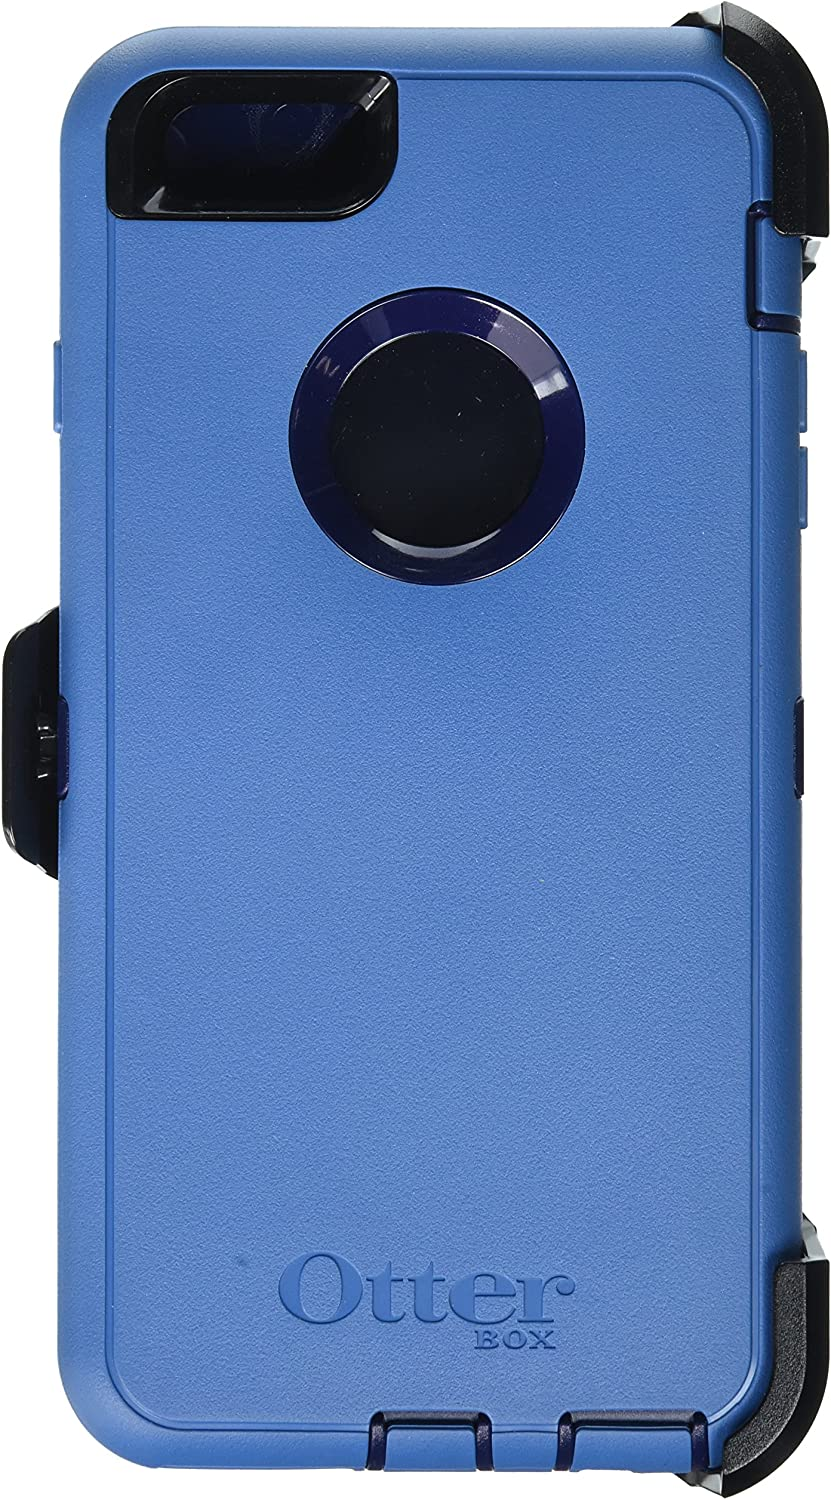 OtterBox Defender Cell Phone Case for iPhone 6 Plus - Frustration-Free Packaging - Ink Blue